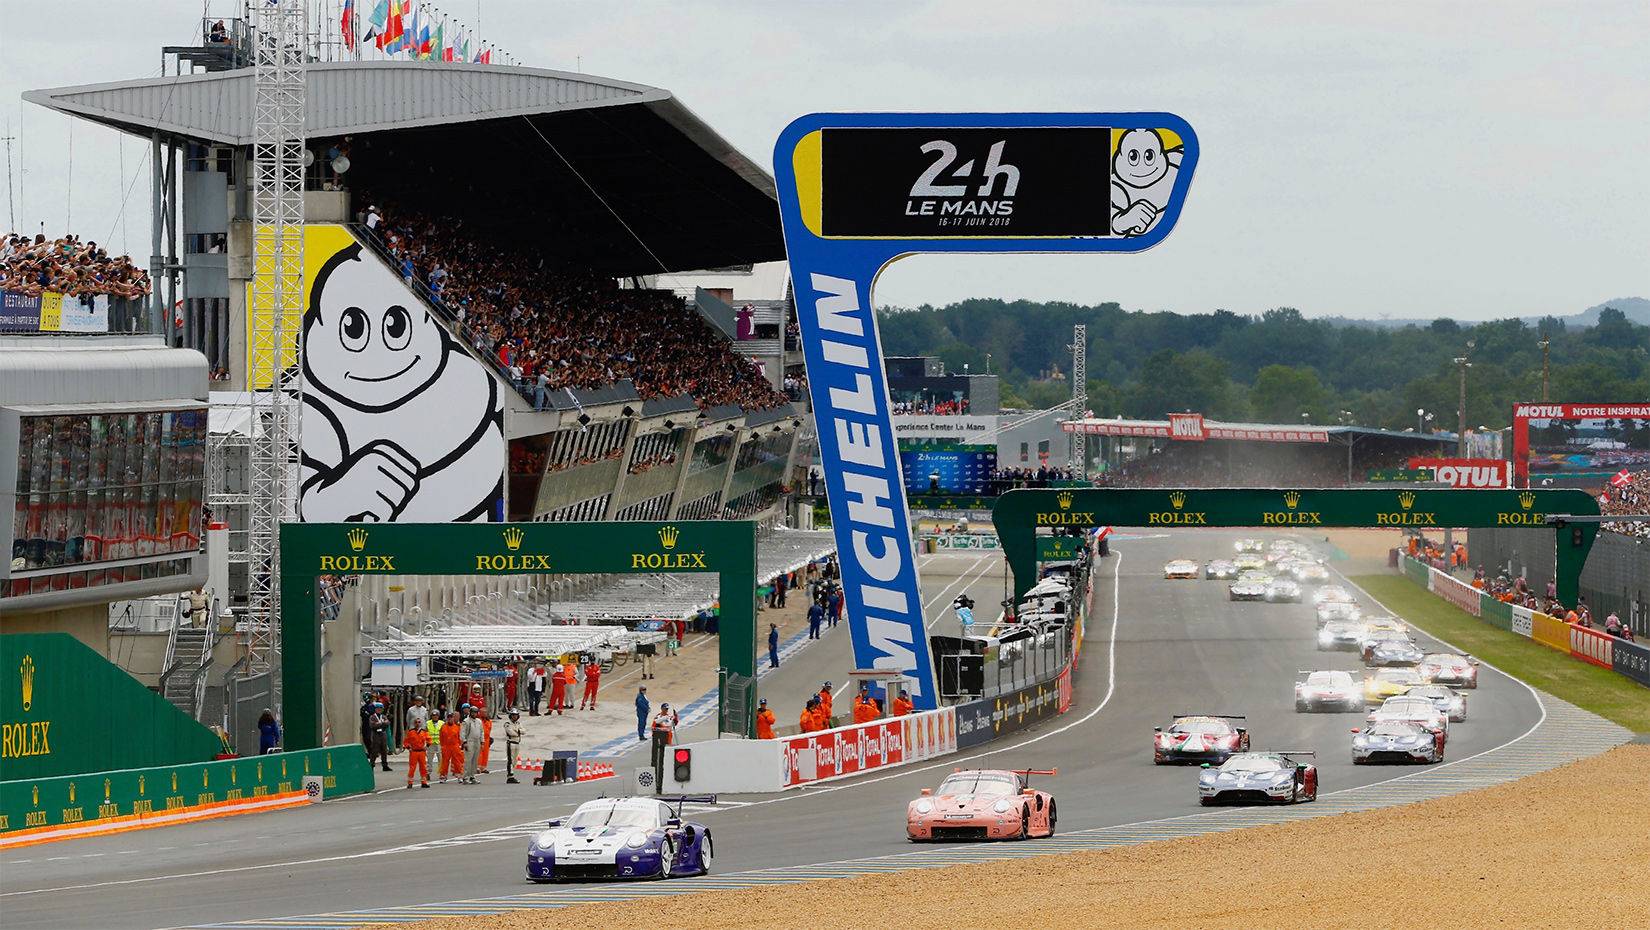 TrackWorthy - 2018 24 Hours of Le Mans (2)